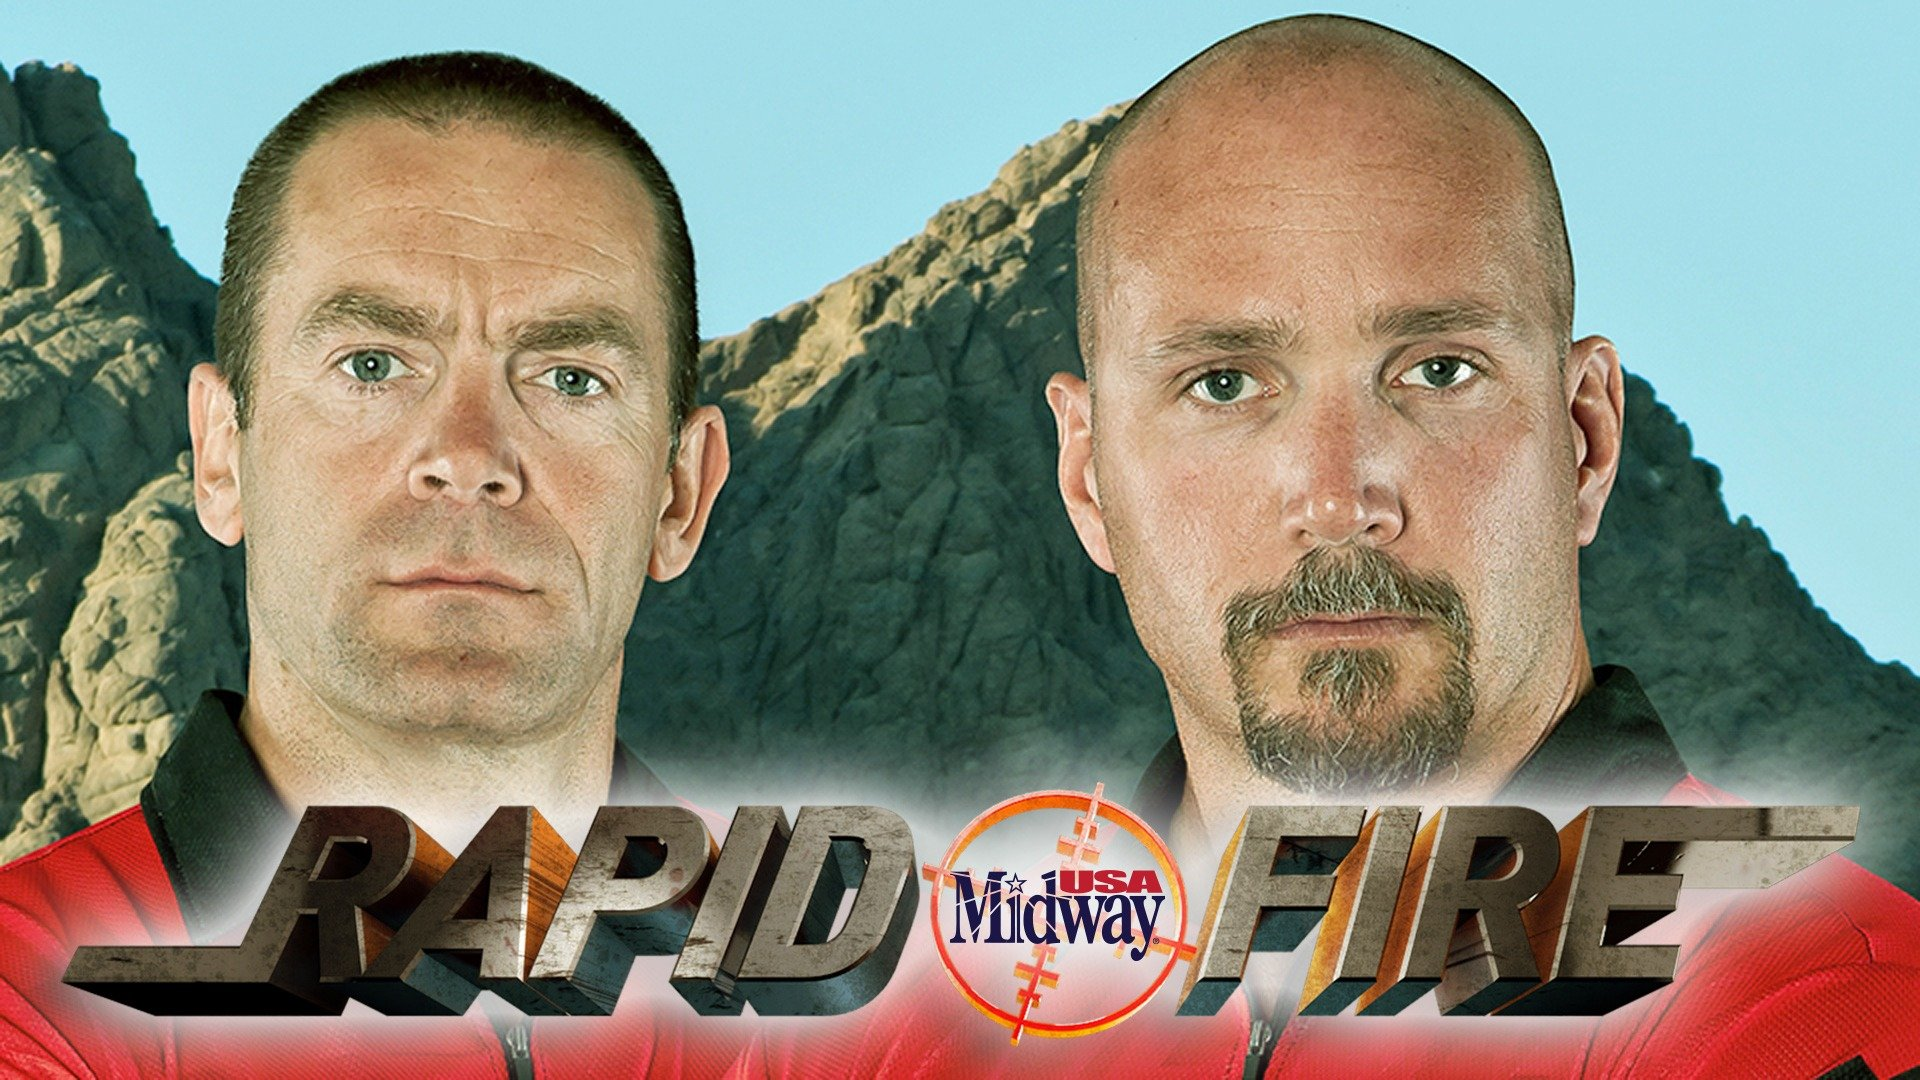 Midway USA's Rapid Fire